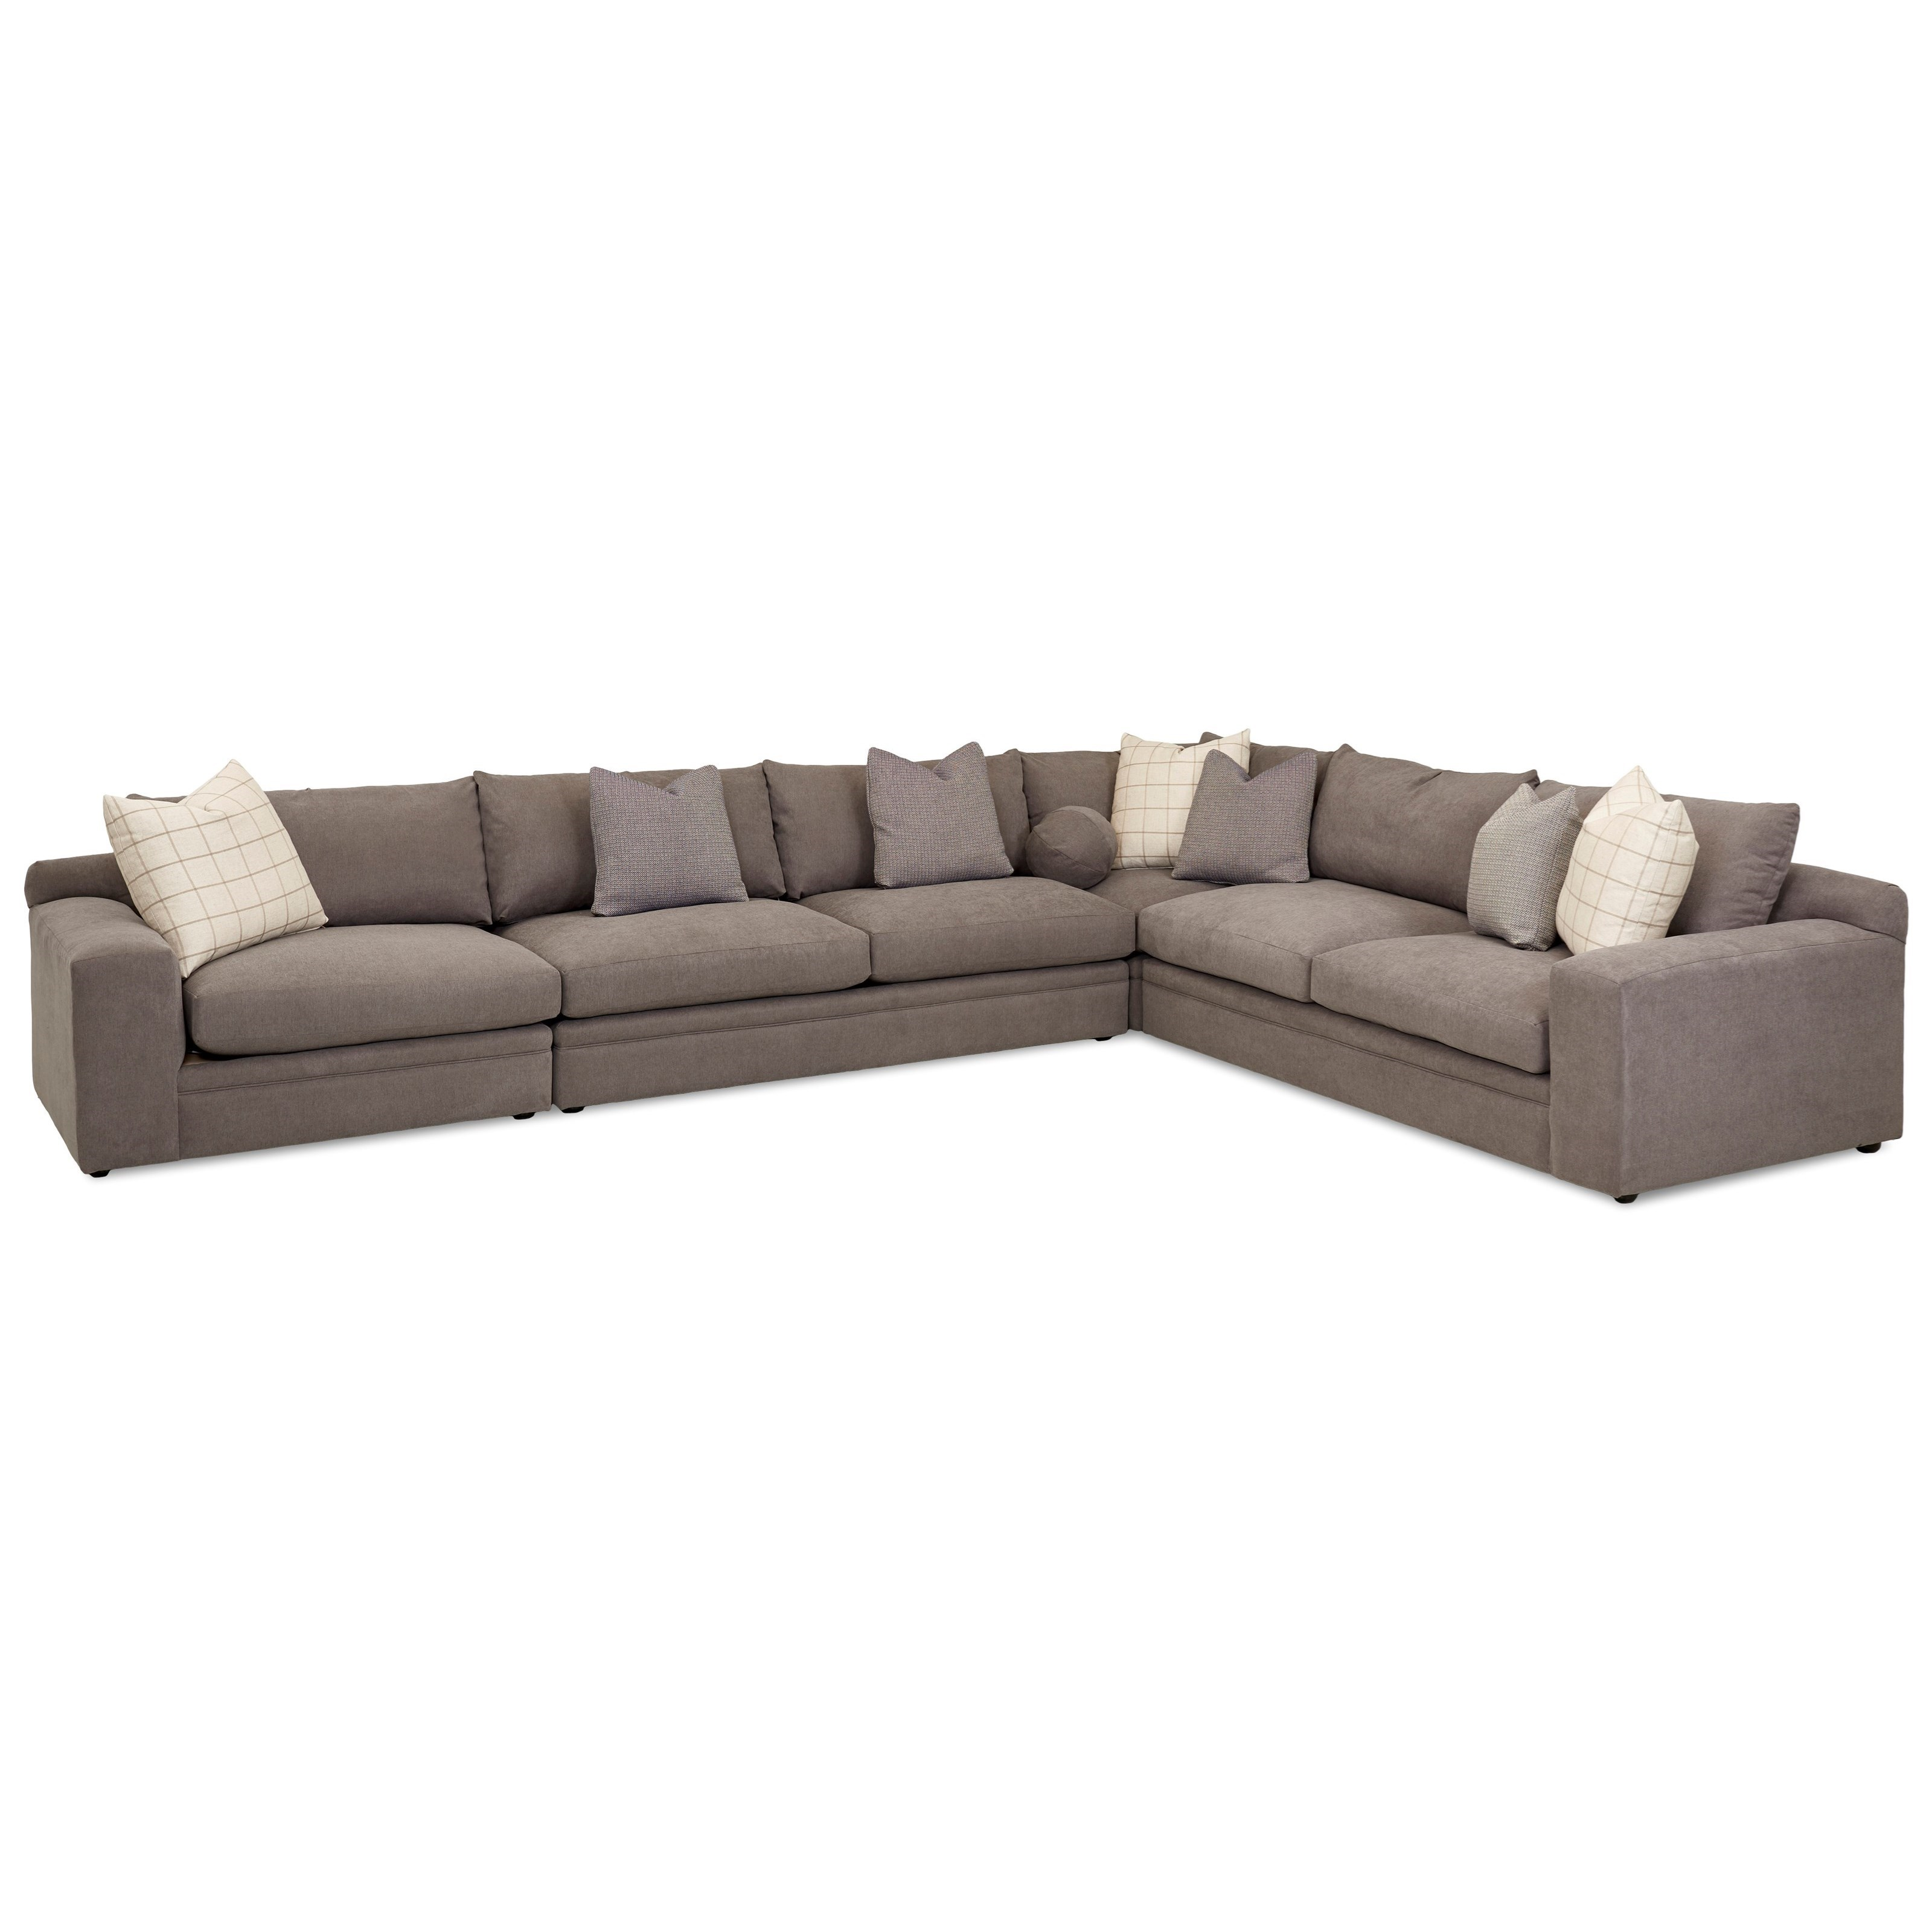 Casa Mesa 4 Pc Sectional Sofa w/ LAF Chair by Klaussner at Johnny Janosik